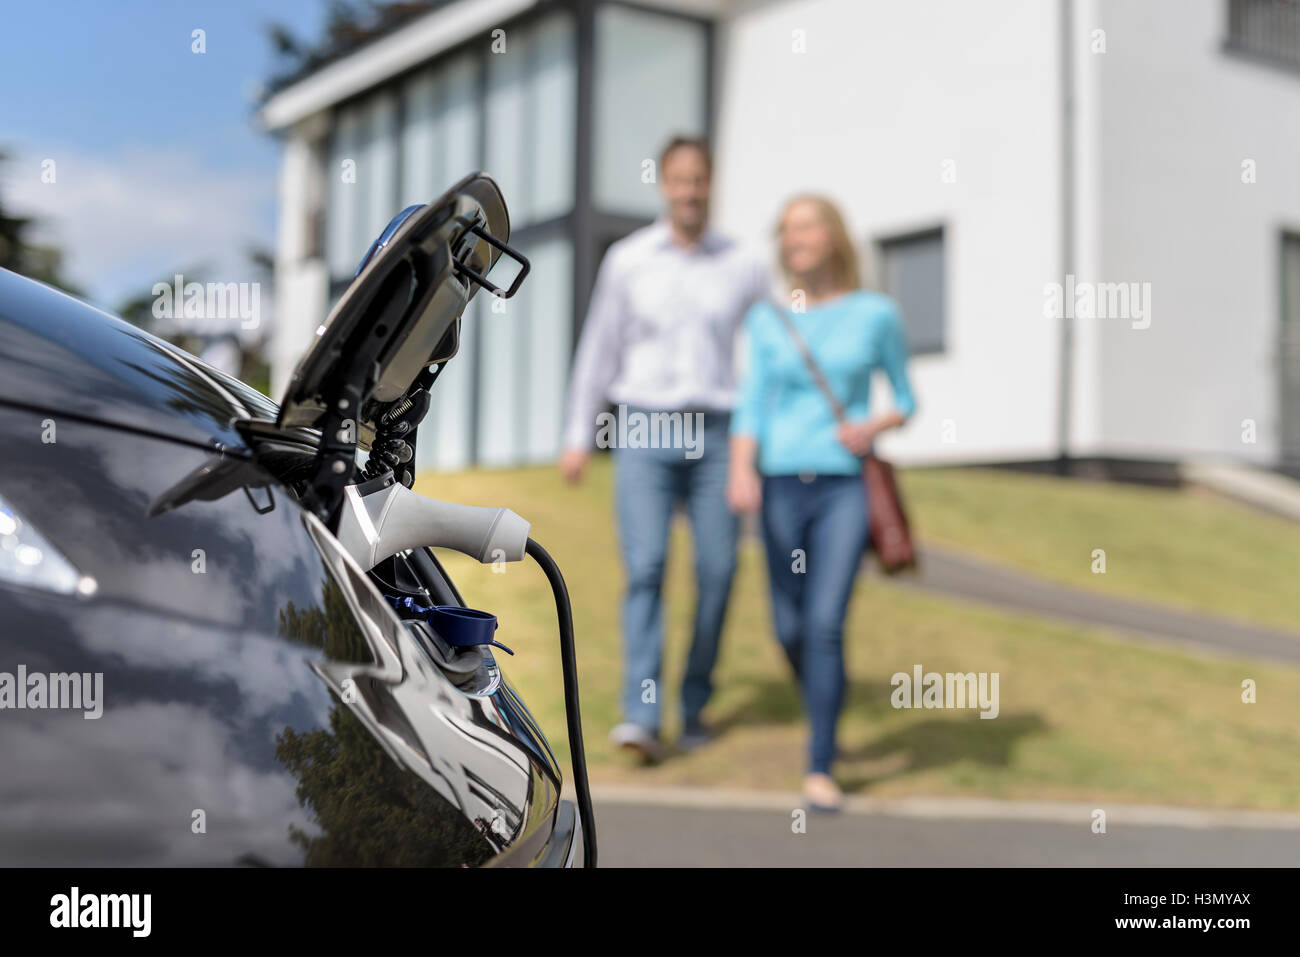 Man and woman walking towards electric car being charged - Stock Image